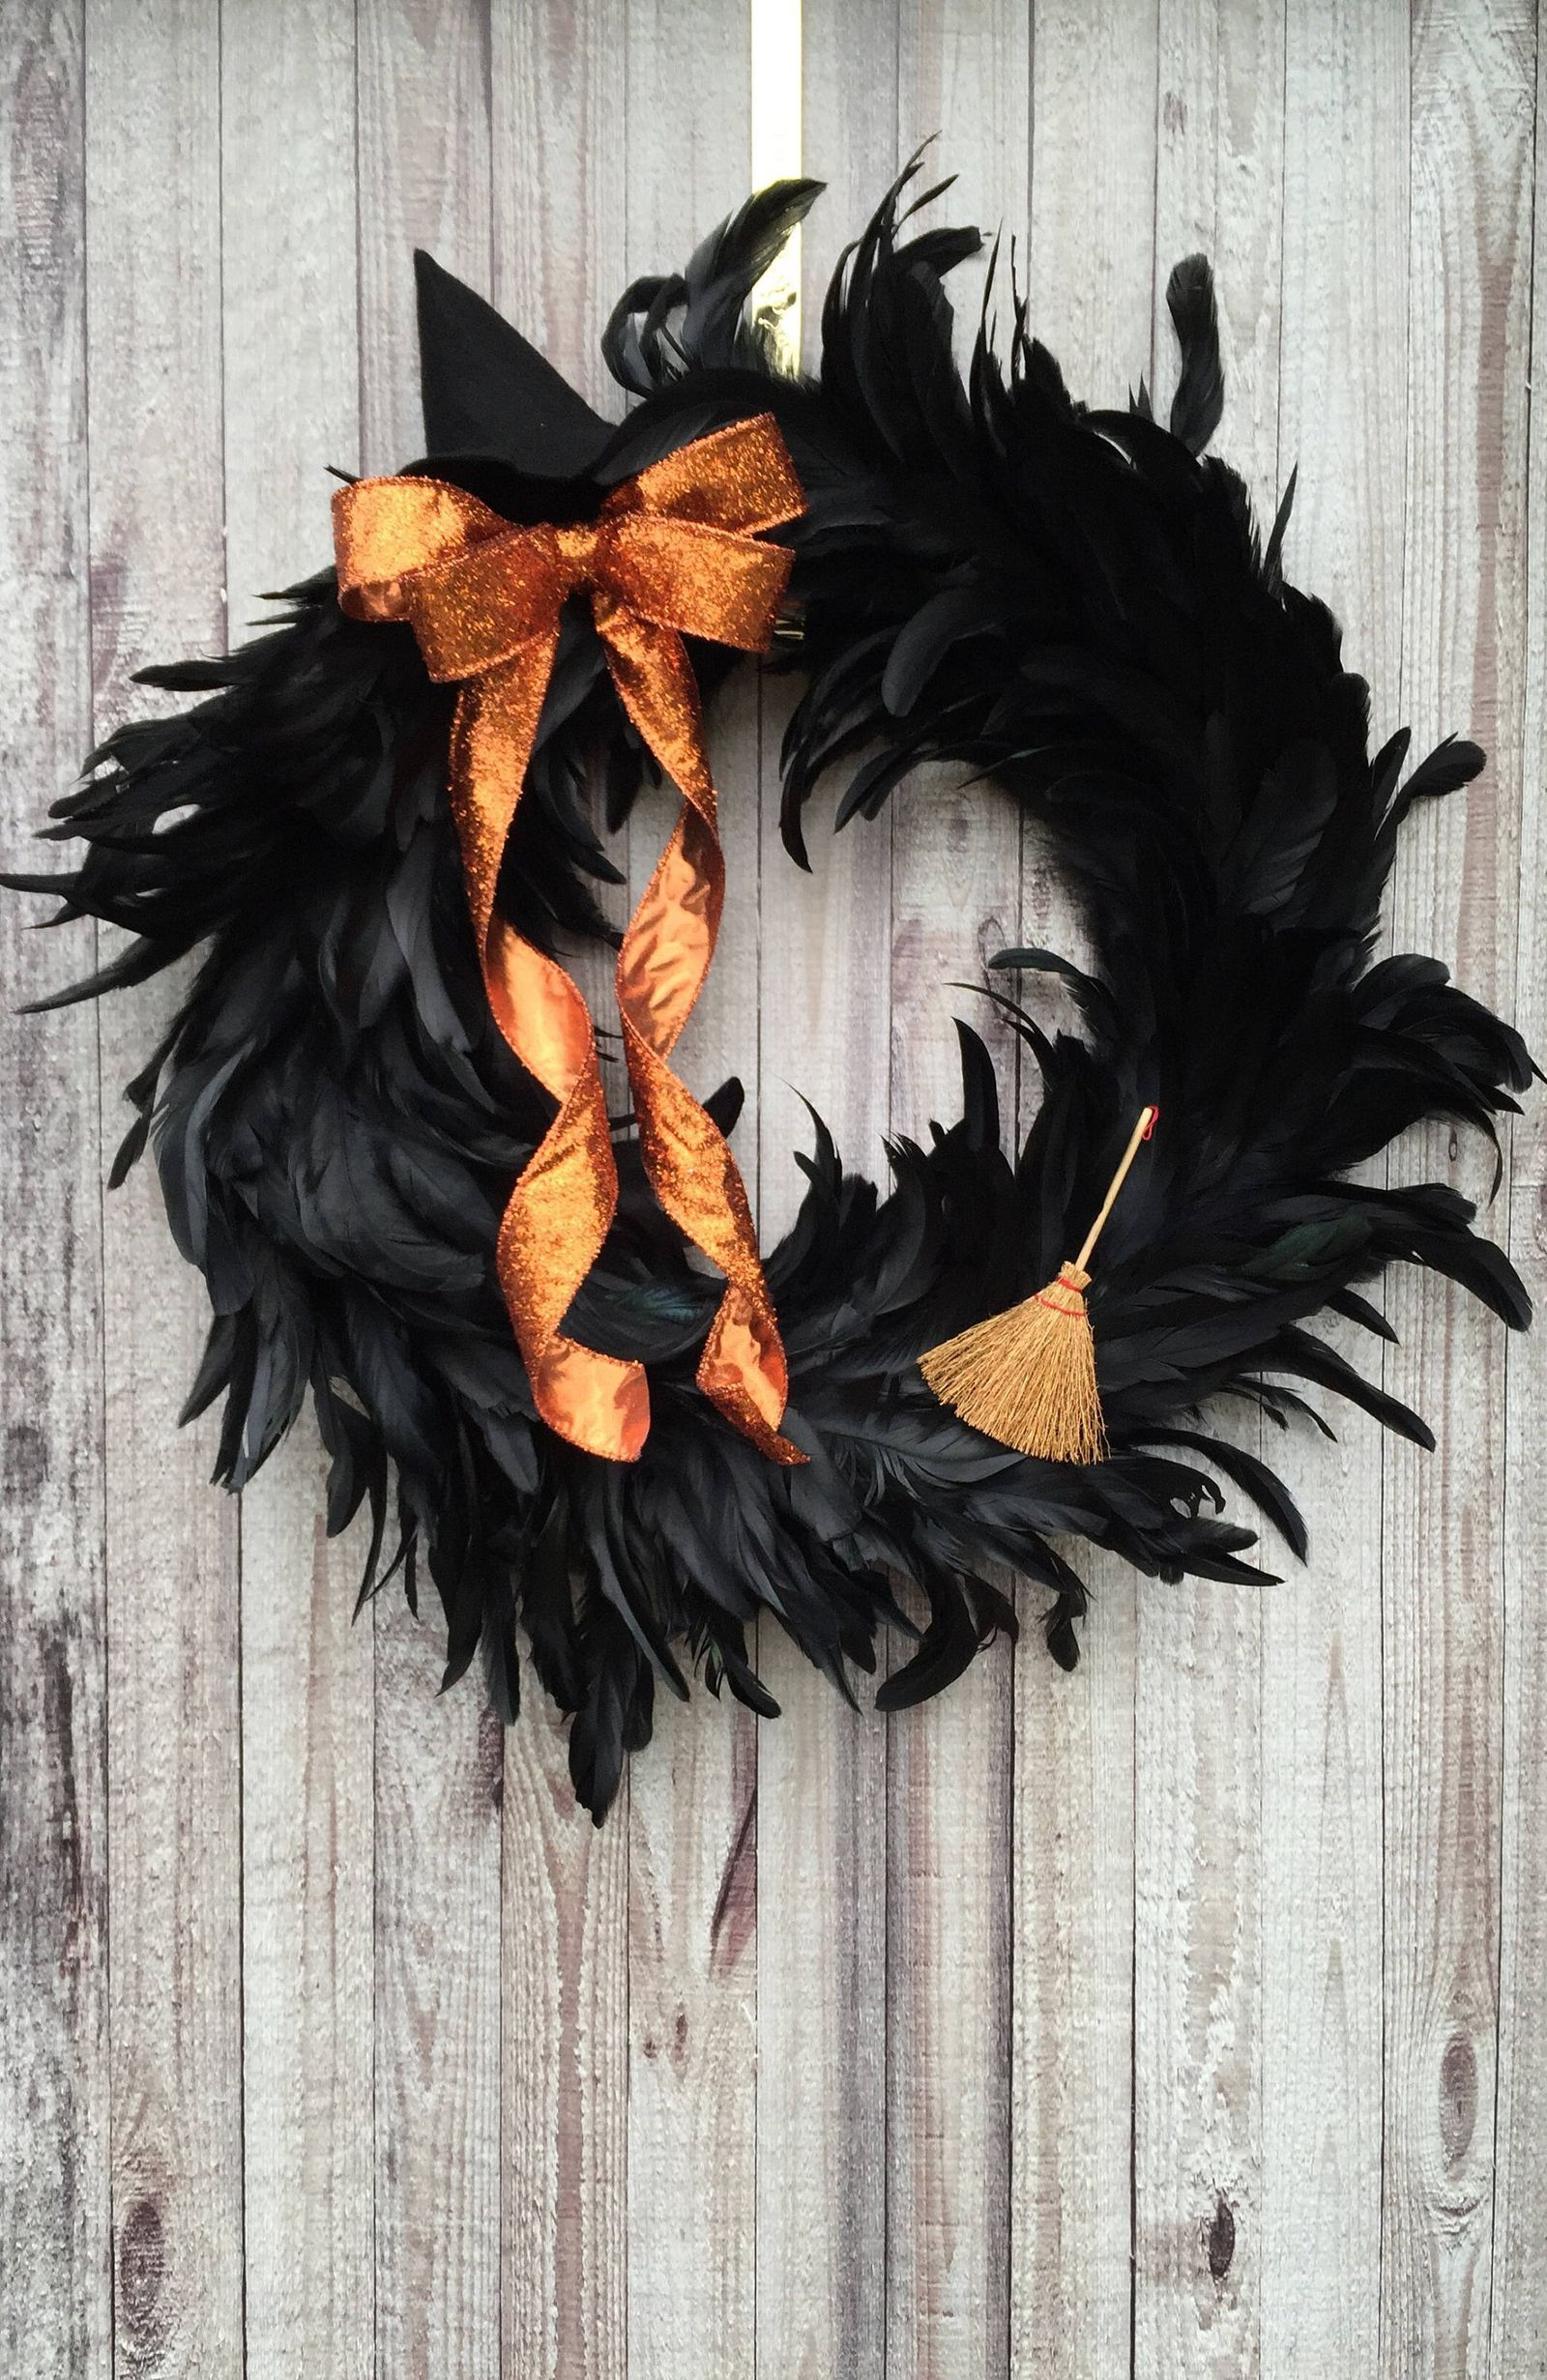 20+ Elegant Halloween Decorating Ideas Pinterest Witch wreath - Elegant Halloween Decor